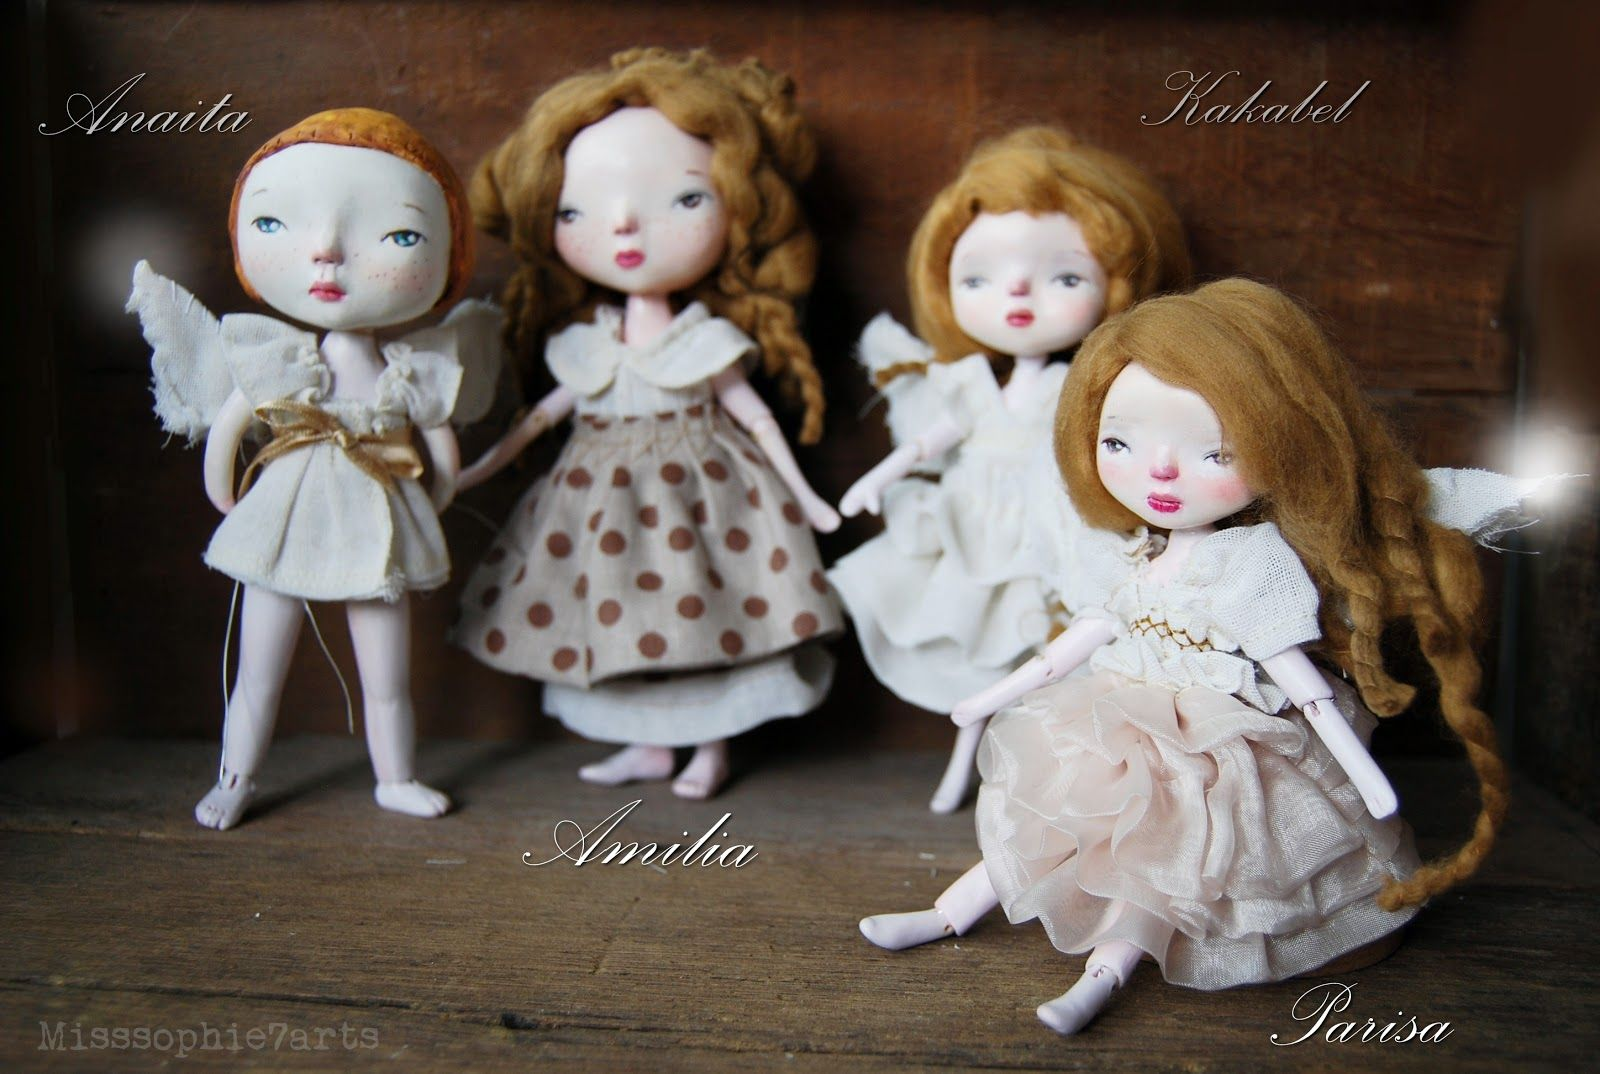 They are all handmade from paper clay